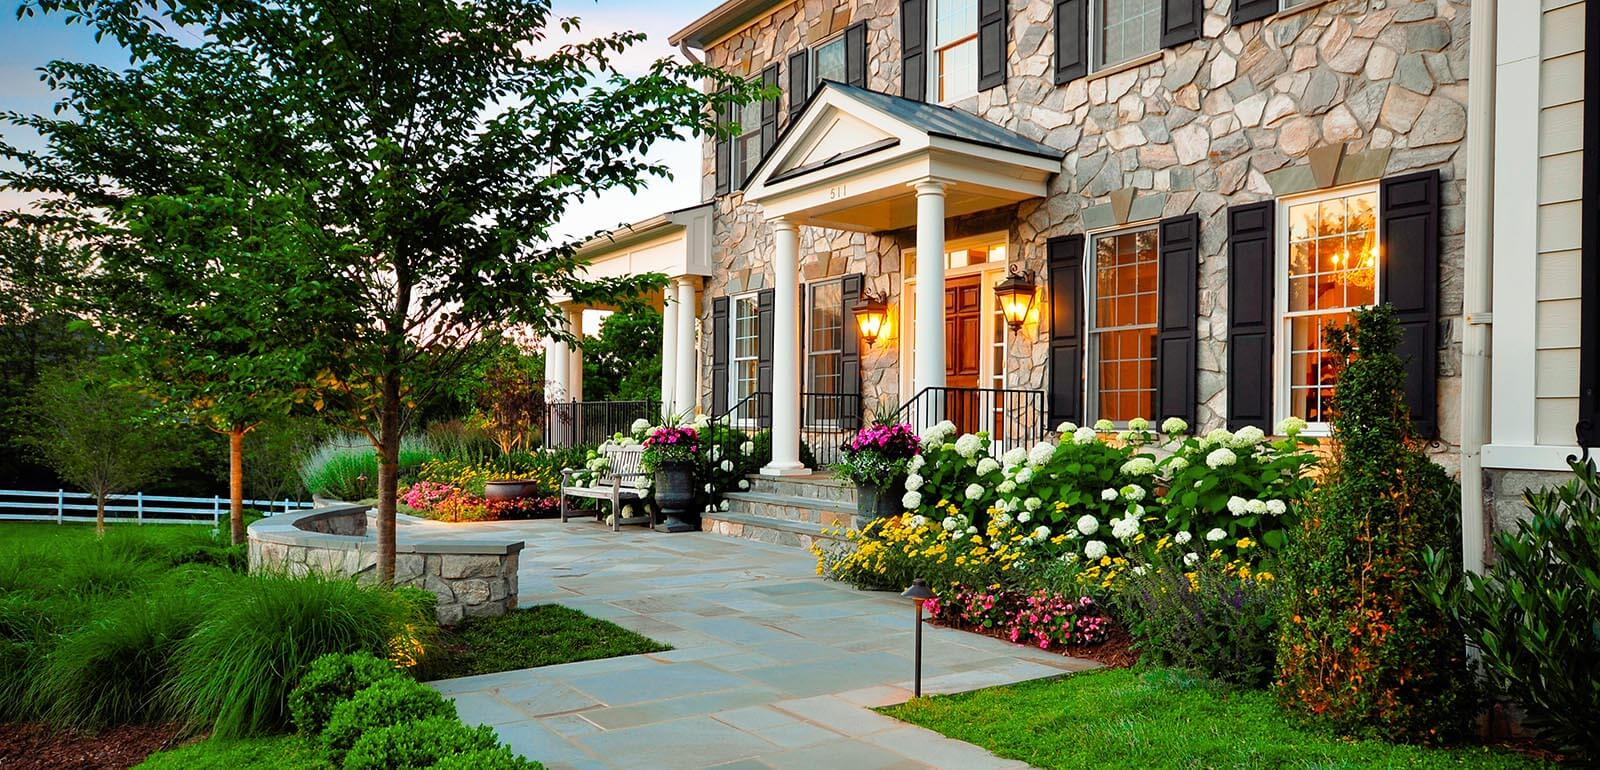 22 Most Beautiful Front Yard Landscaping Designs & Ideas ... on Backyard Lawn Designs  id=72788